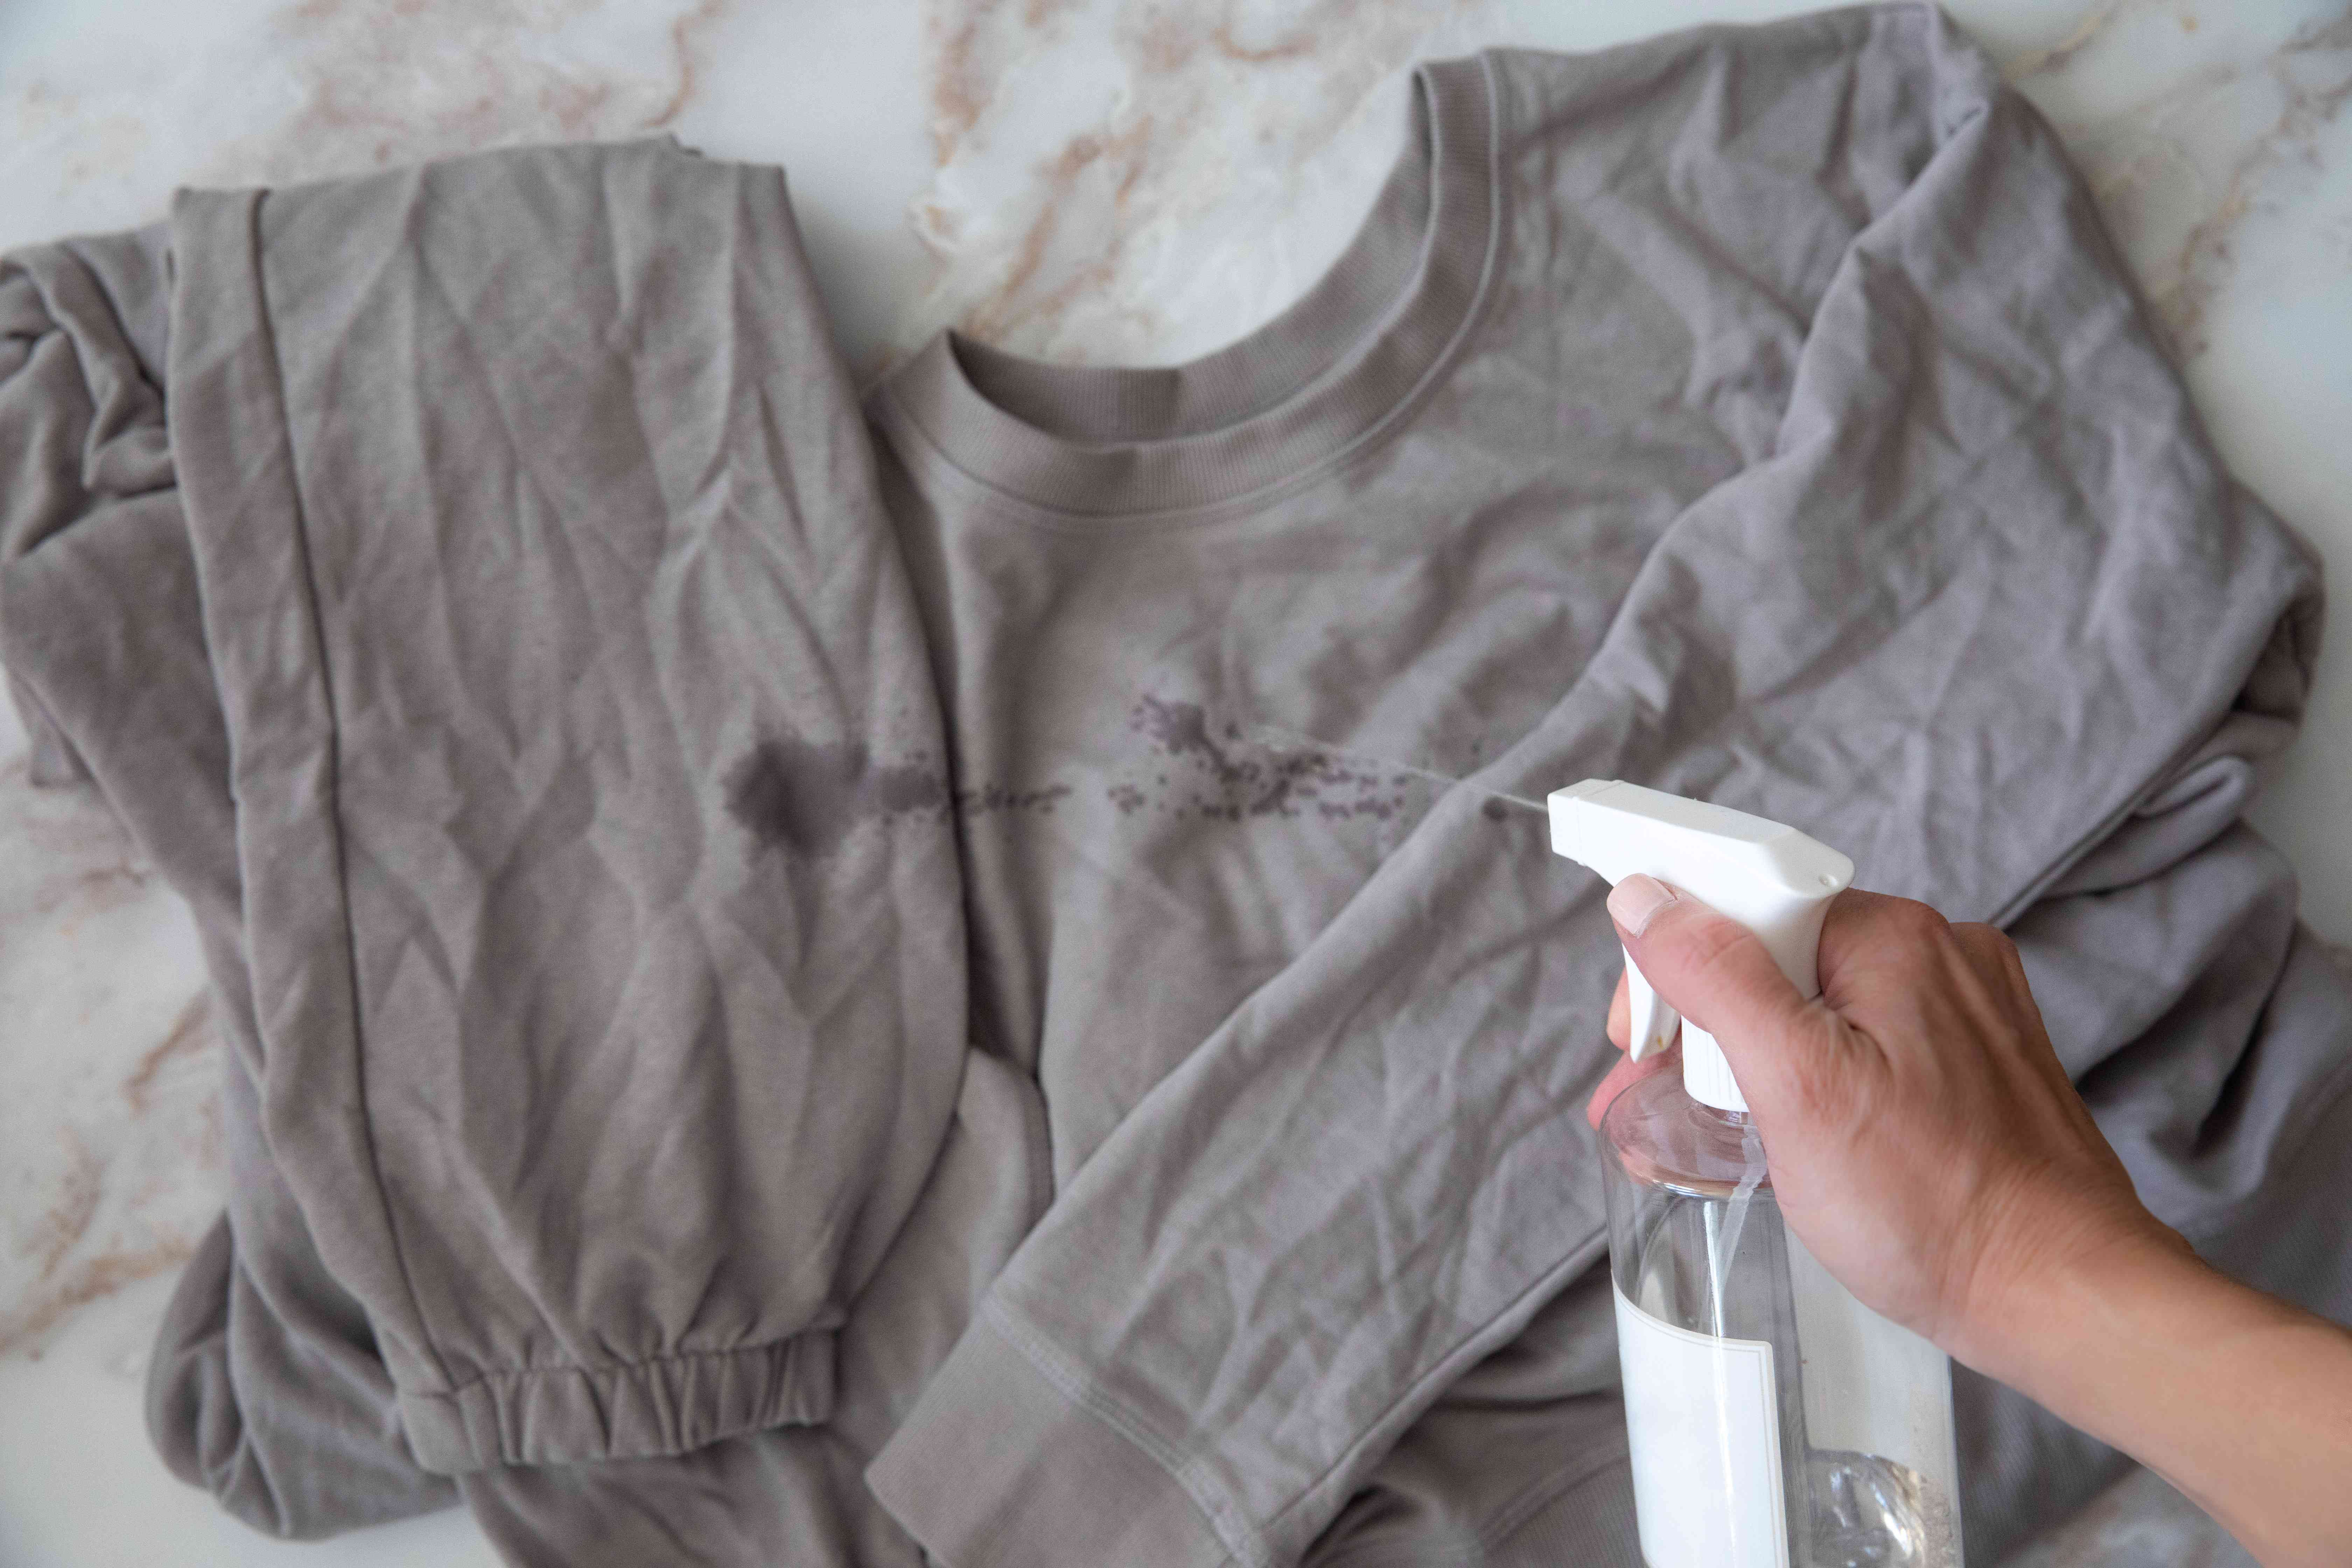 Rubbing alcohol sprayed on gray clothes to kill bugs